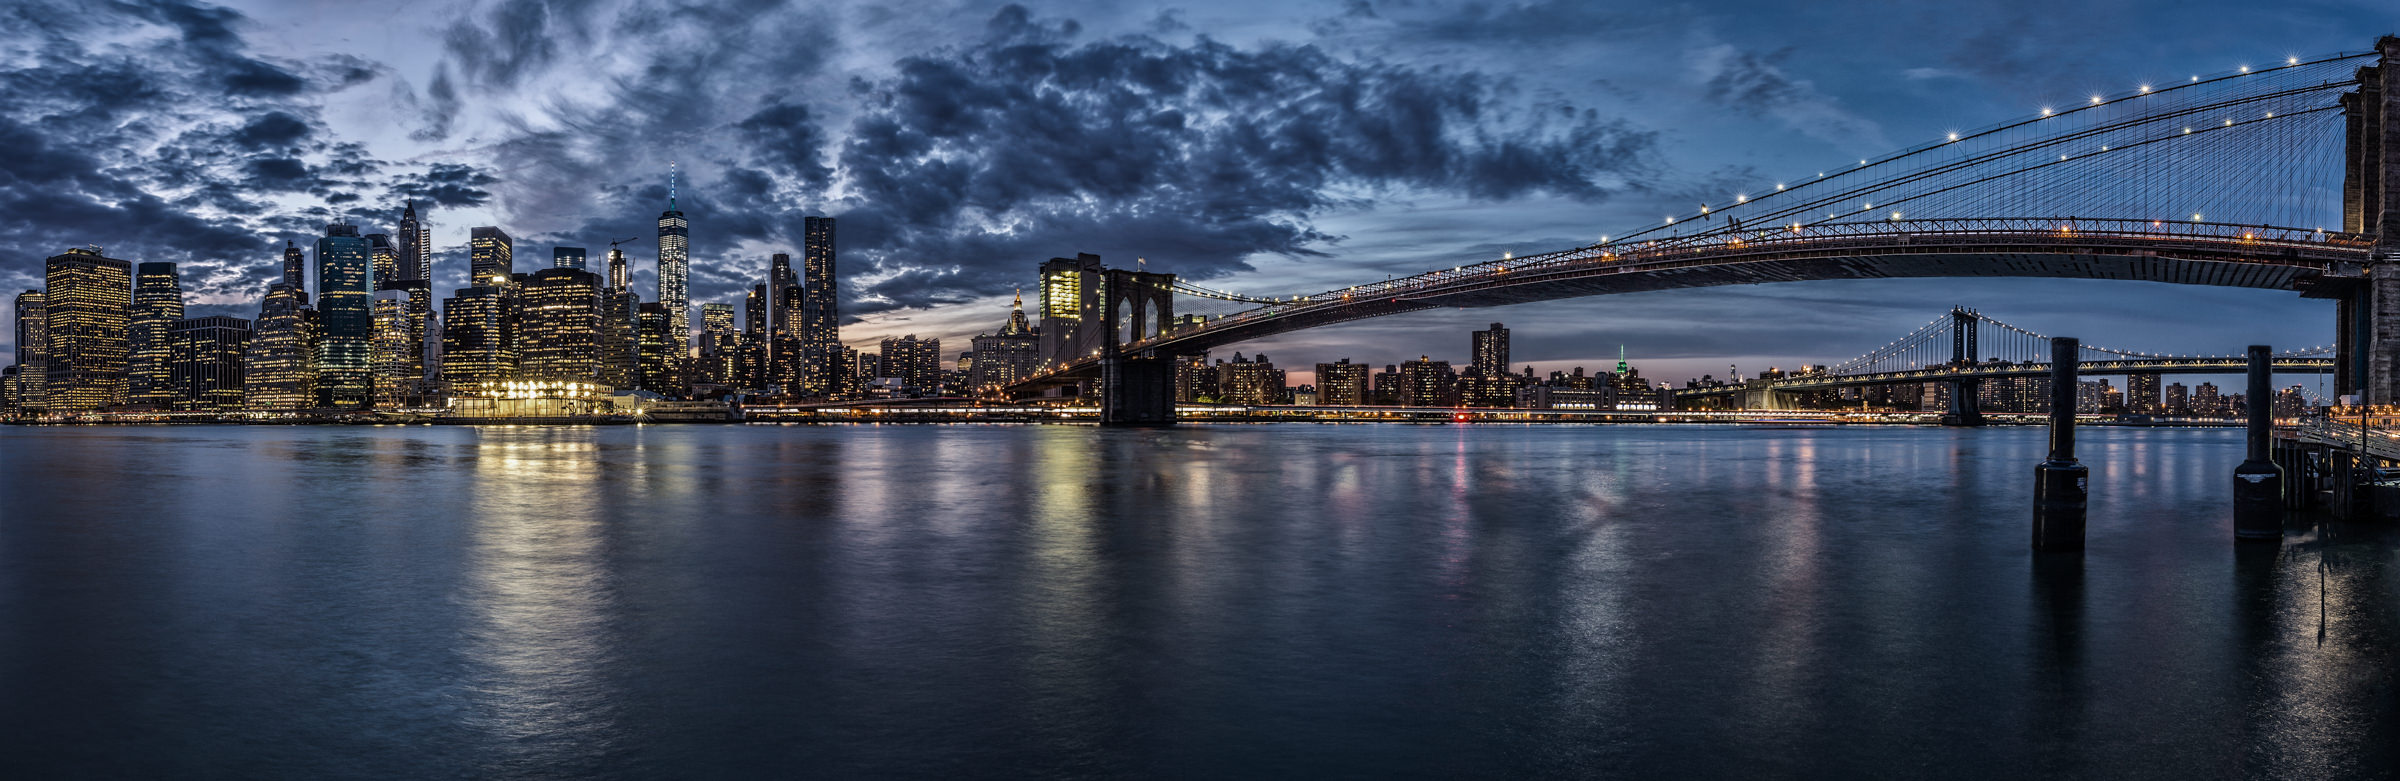 New York City Panorama - USA - City Photography